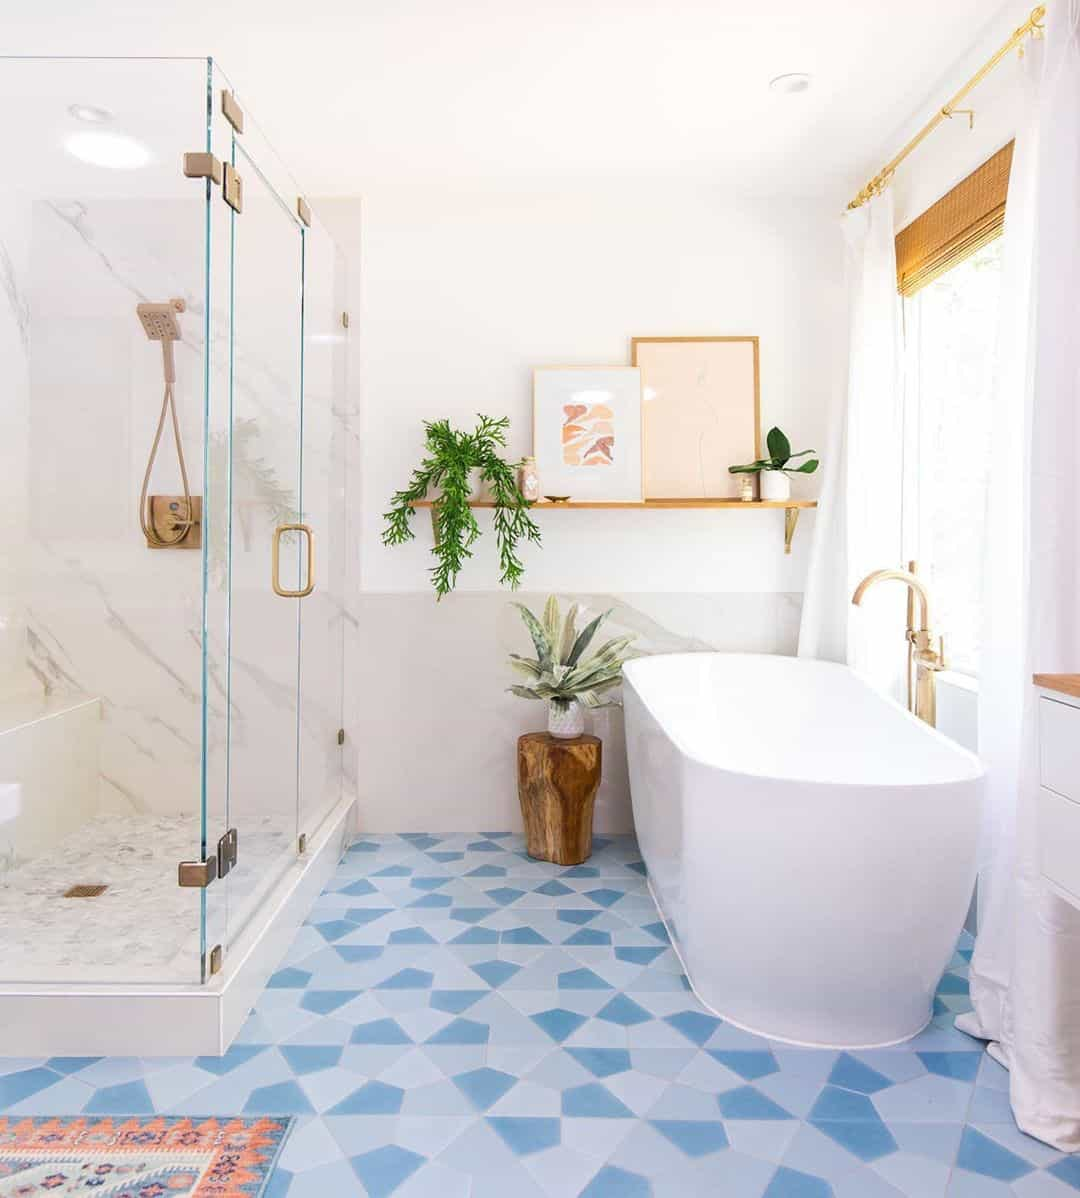 Bright and airy bathroom with colorful, geometric blue tiles, oversized tub and woven wood shades in the window.